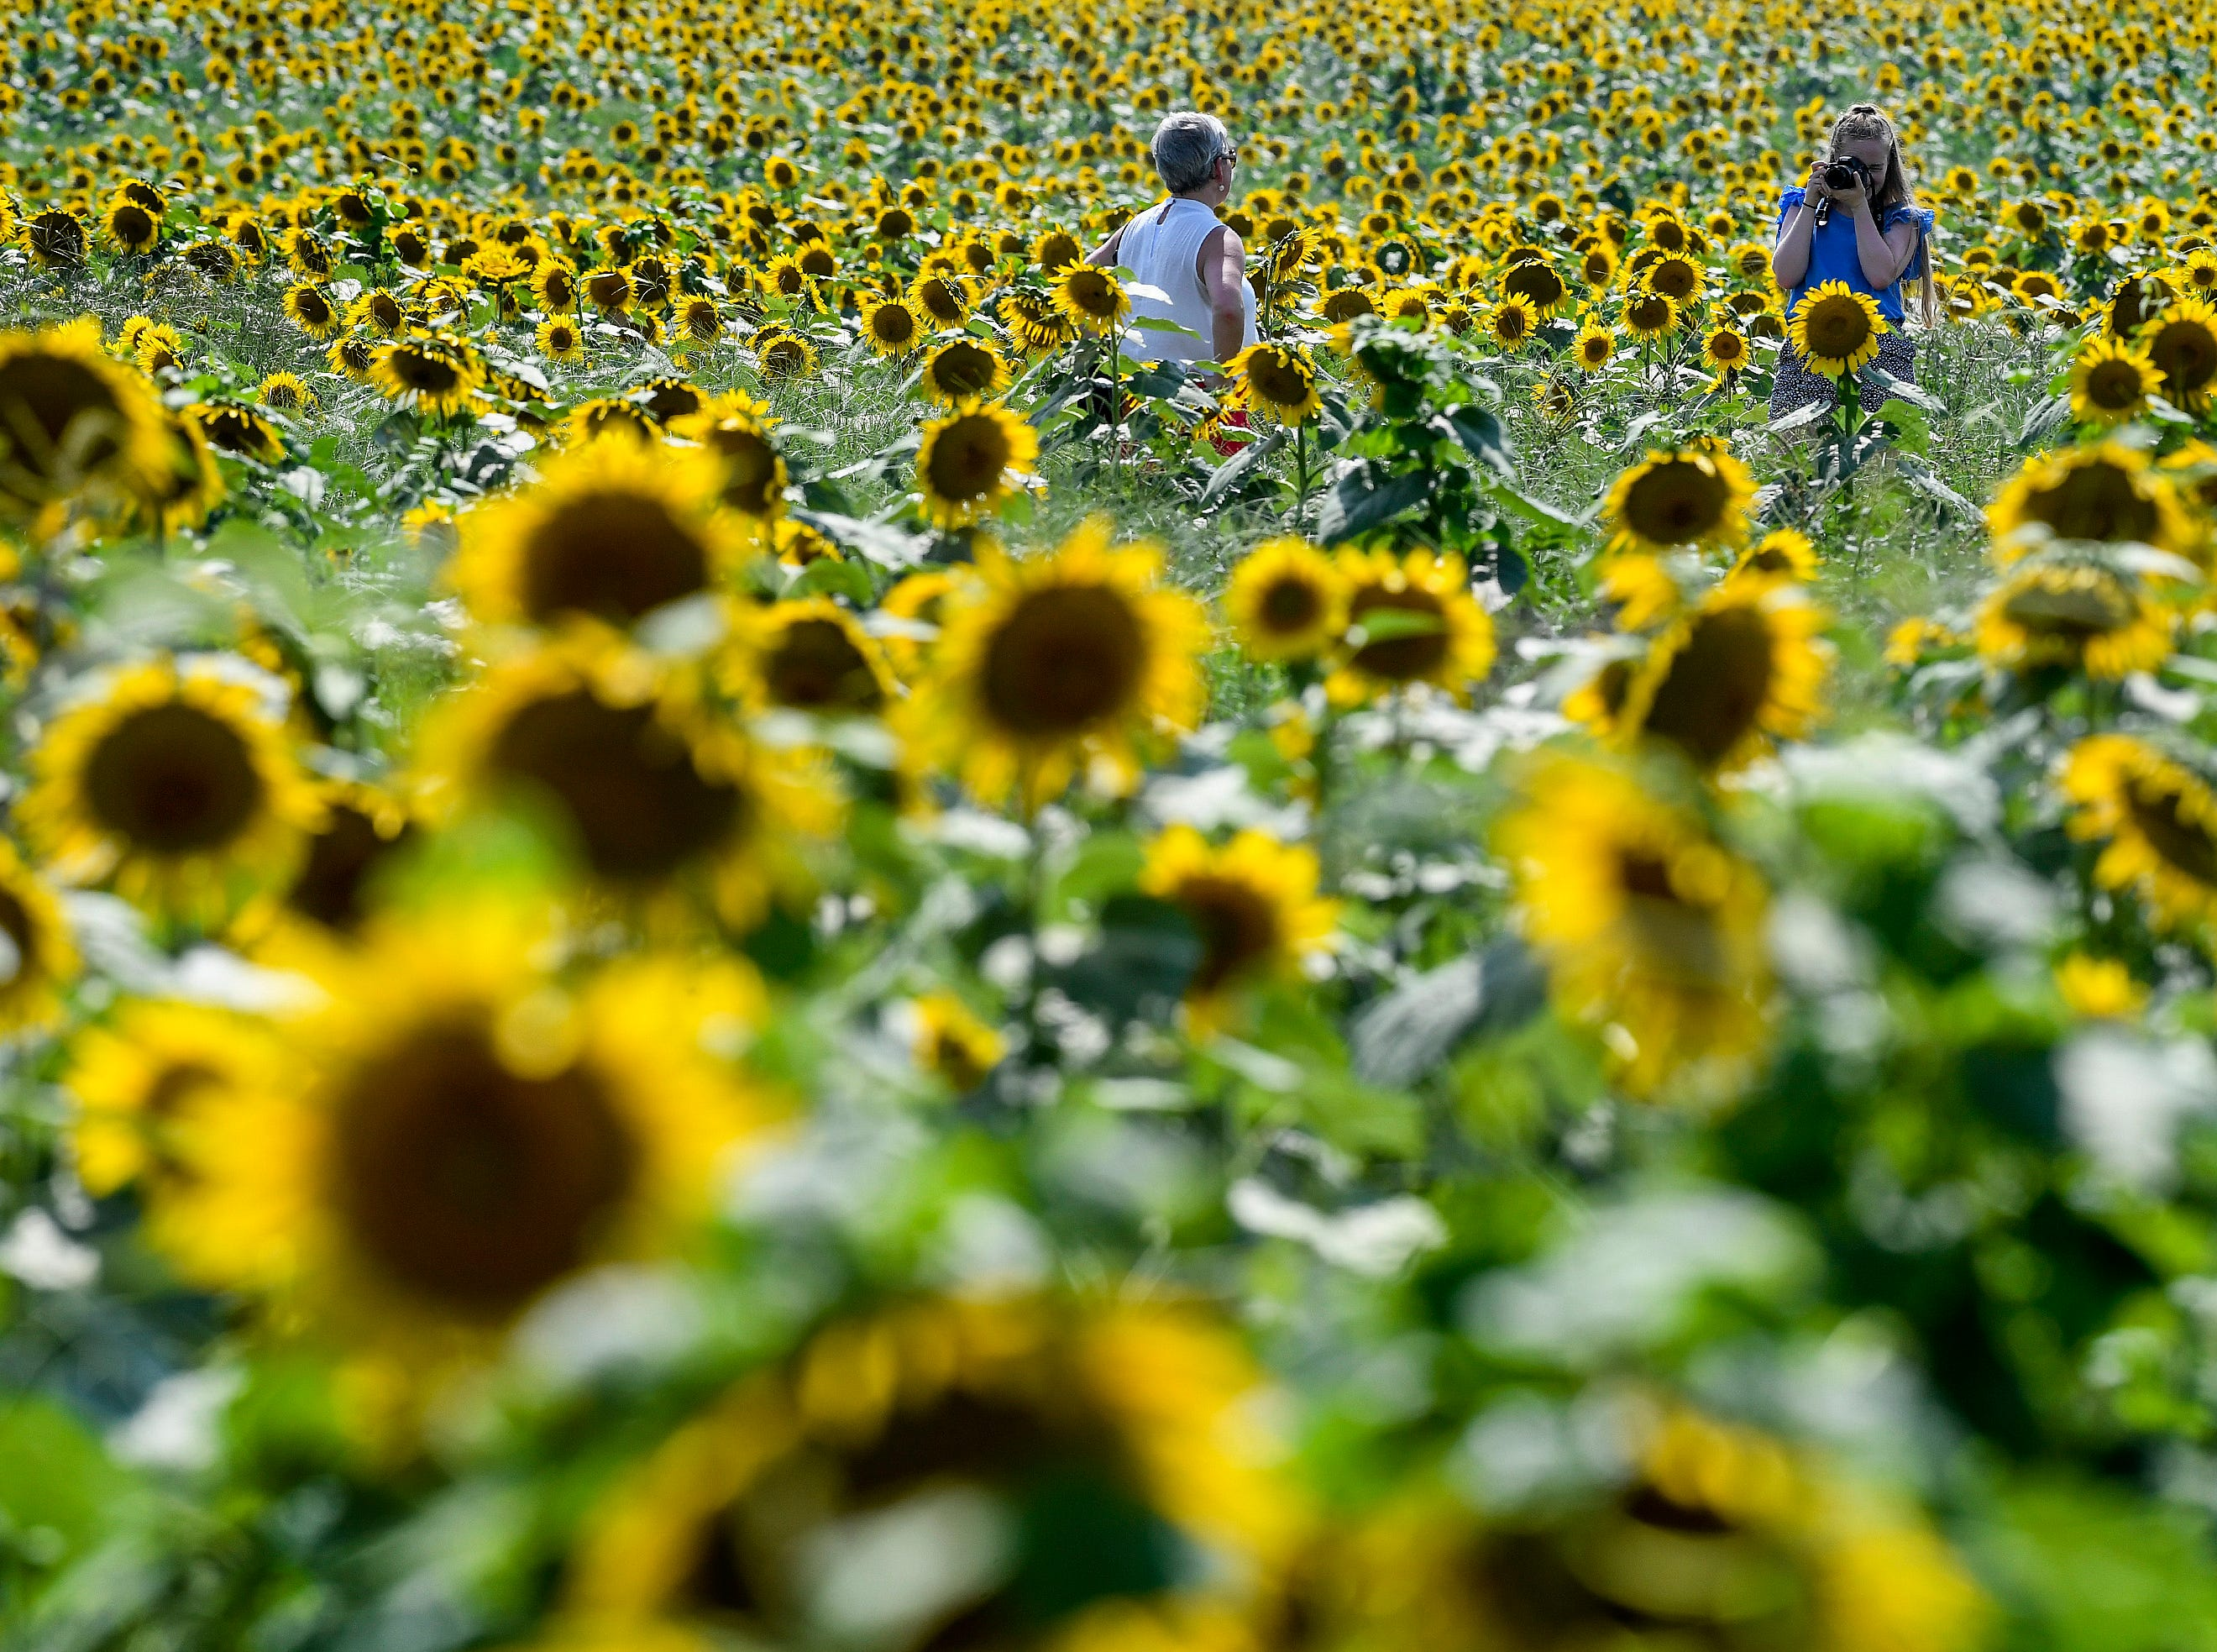 Angie and Lily Gulledge, of Eclectic, take photos as the sunflowers bloom in the Sheridan family sunflower field about five miles west of Autaugaville, Ala. on Monday August 13, 2018.